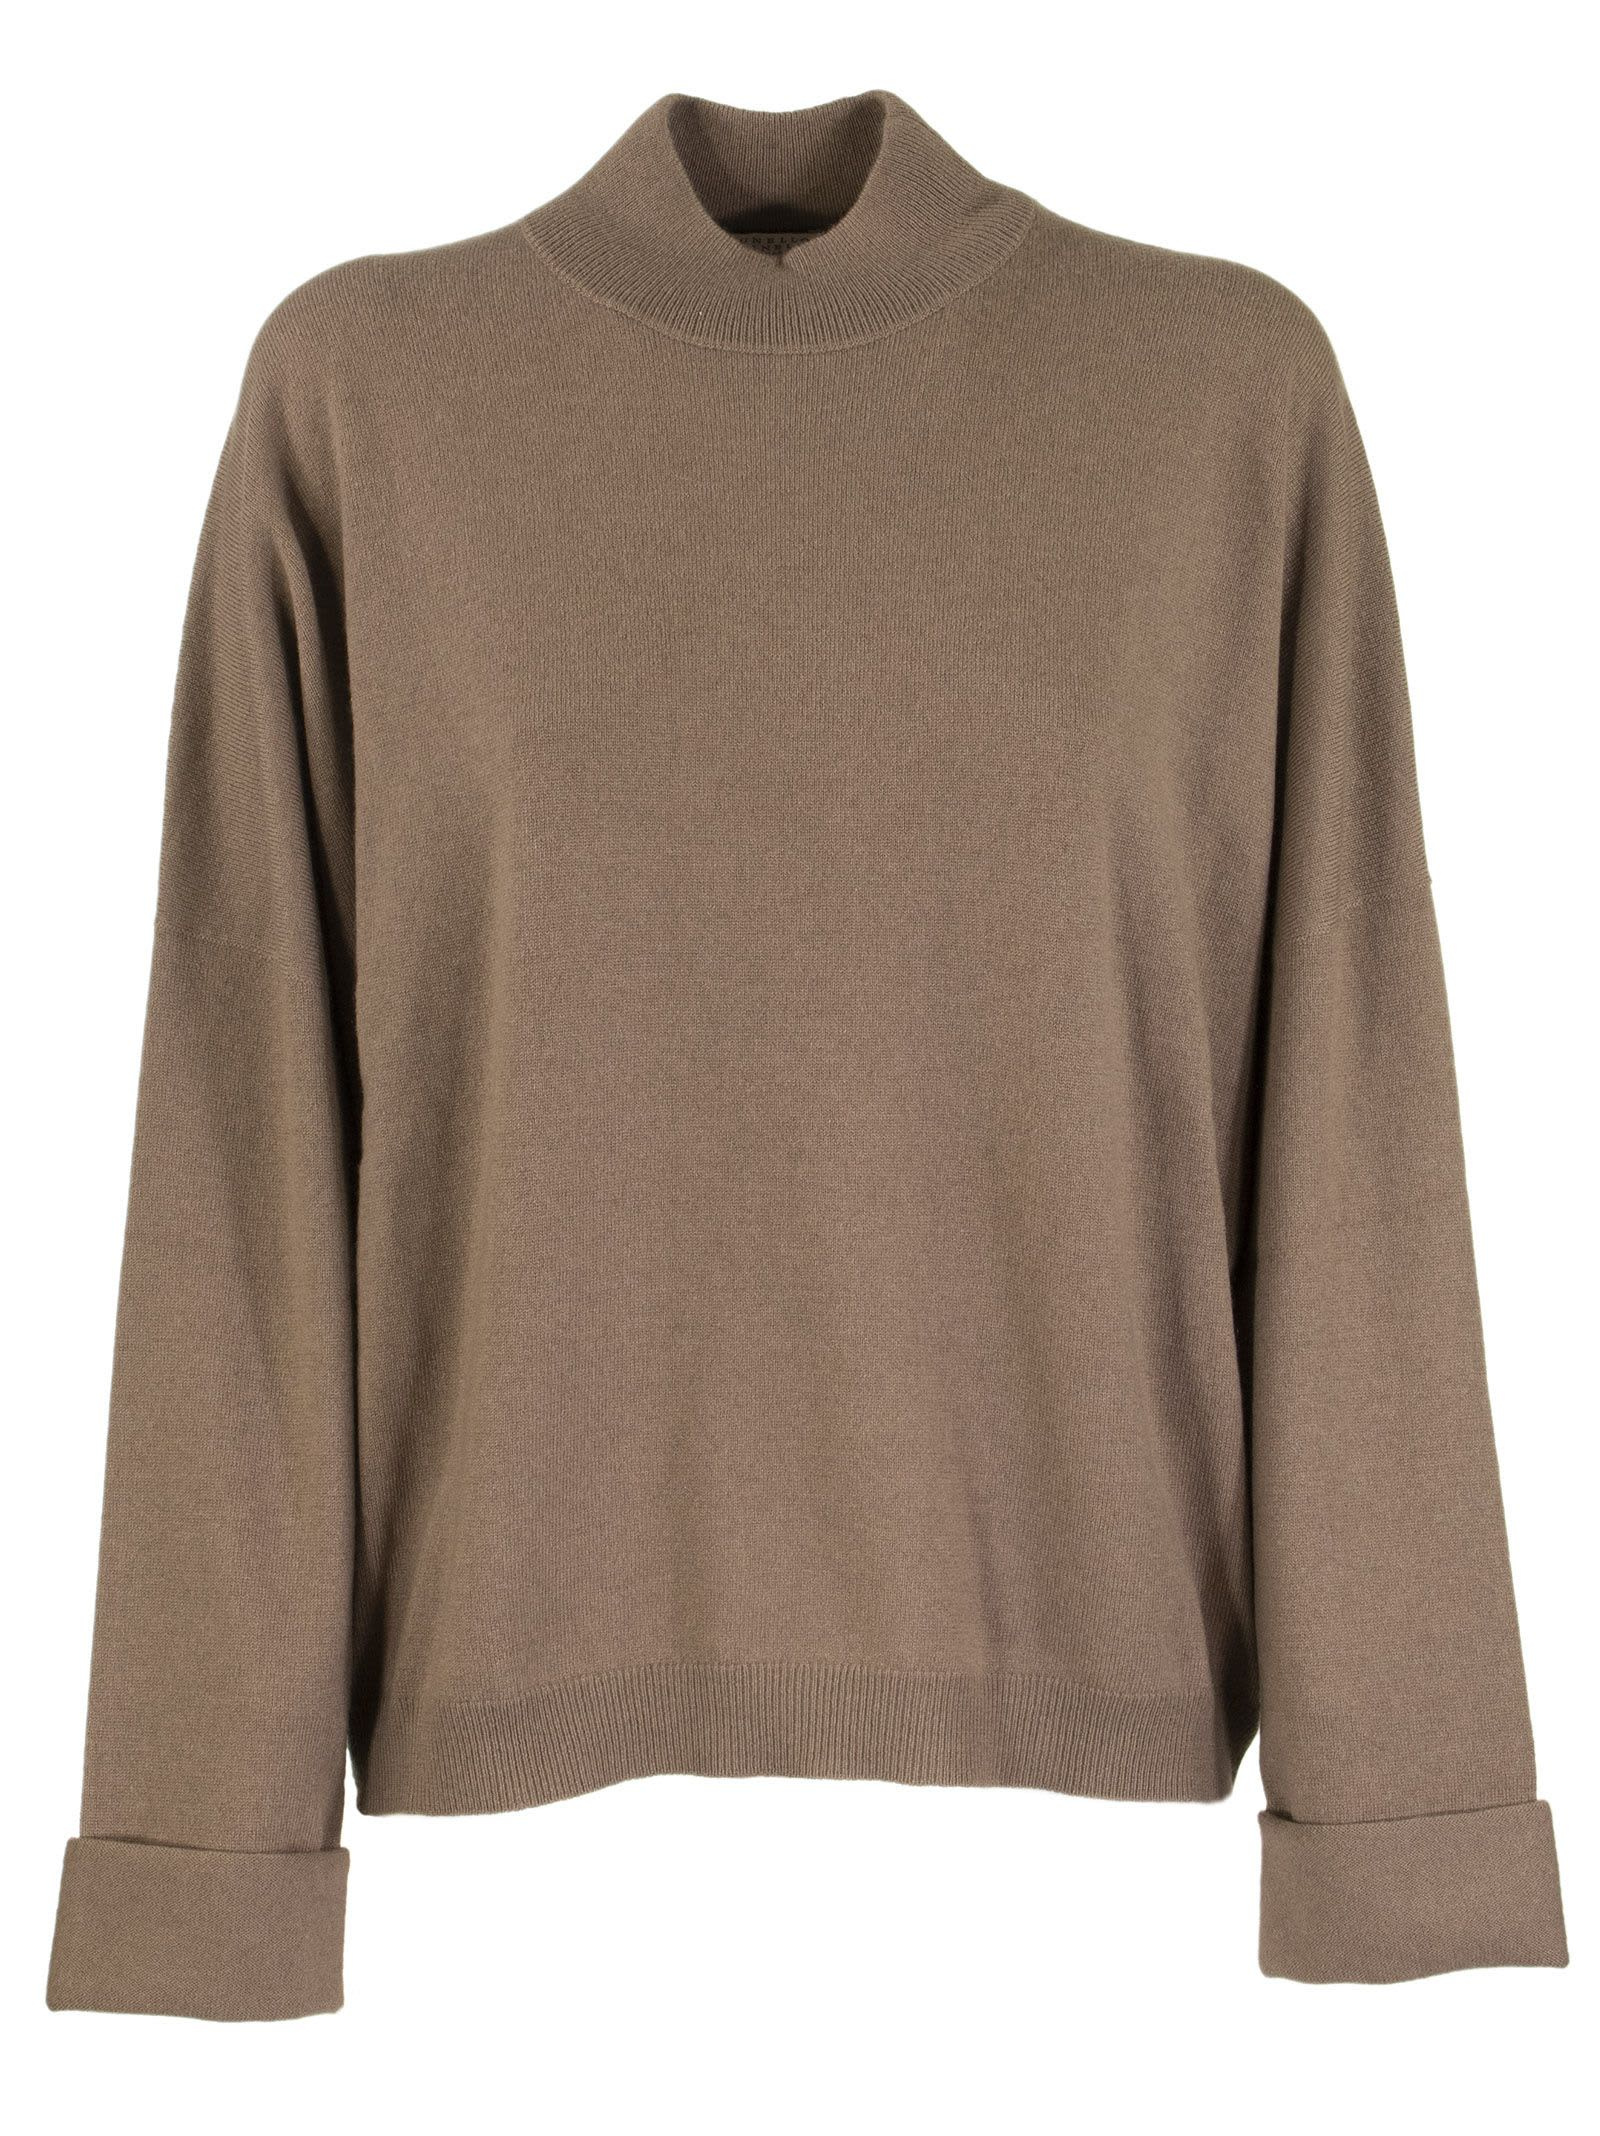 Brunello Cucinelli HIGH NECK SWEATER CASHMERE MOCK NECK SWEATER WITH MONILI